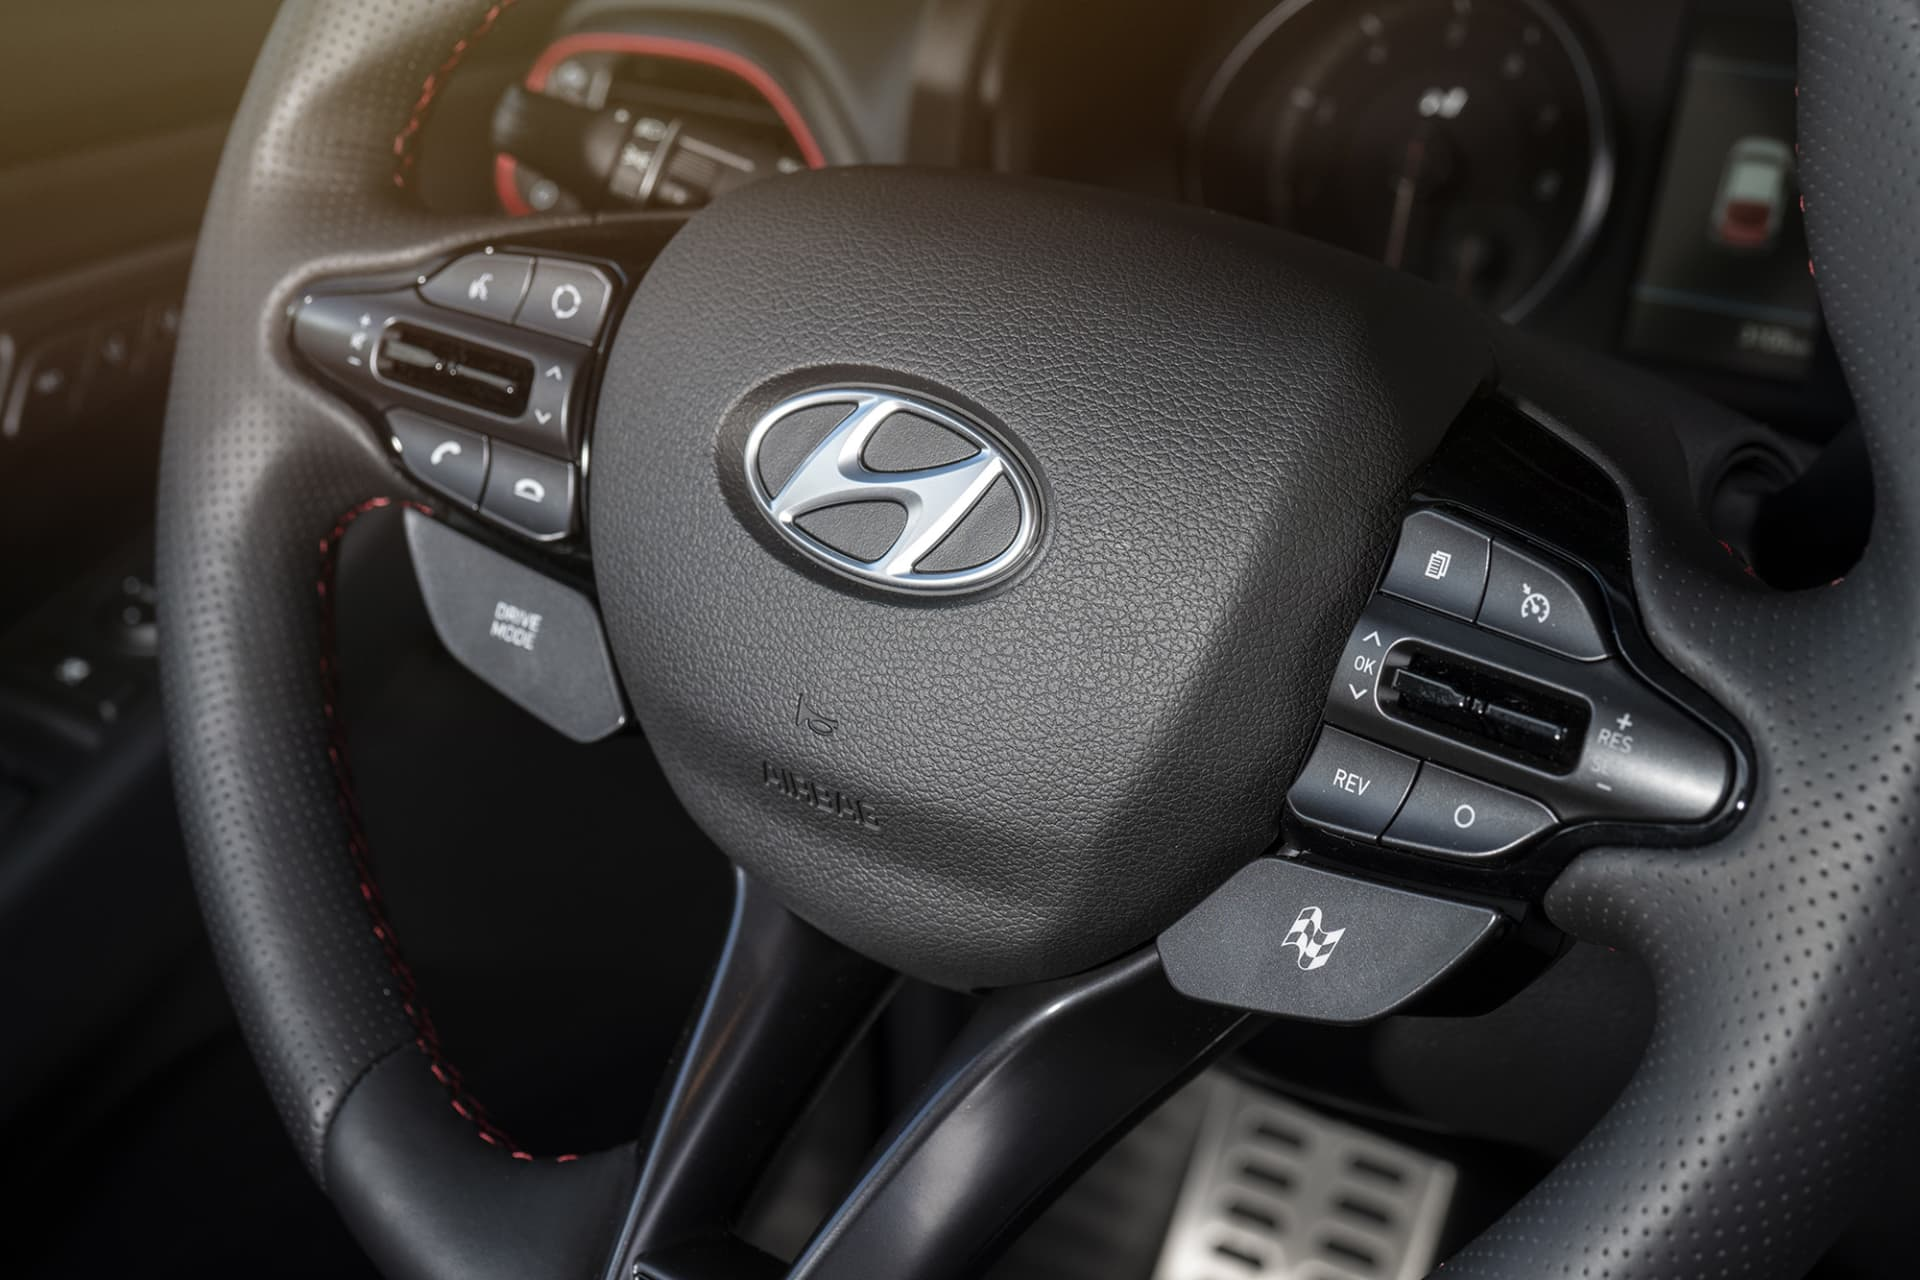 On the right side of the steering wheel is the button for the various driving programs. N Custom is the sportiest and unleashes all the power and performance.